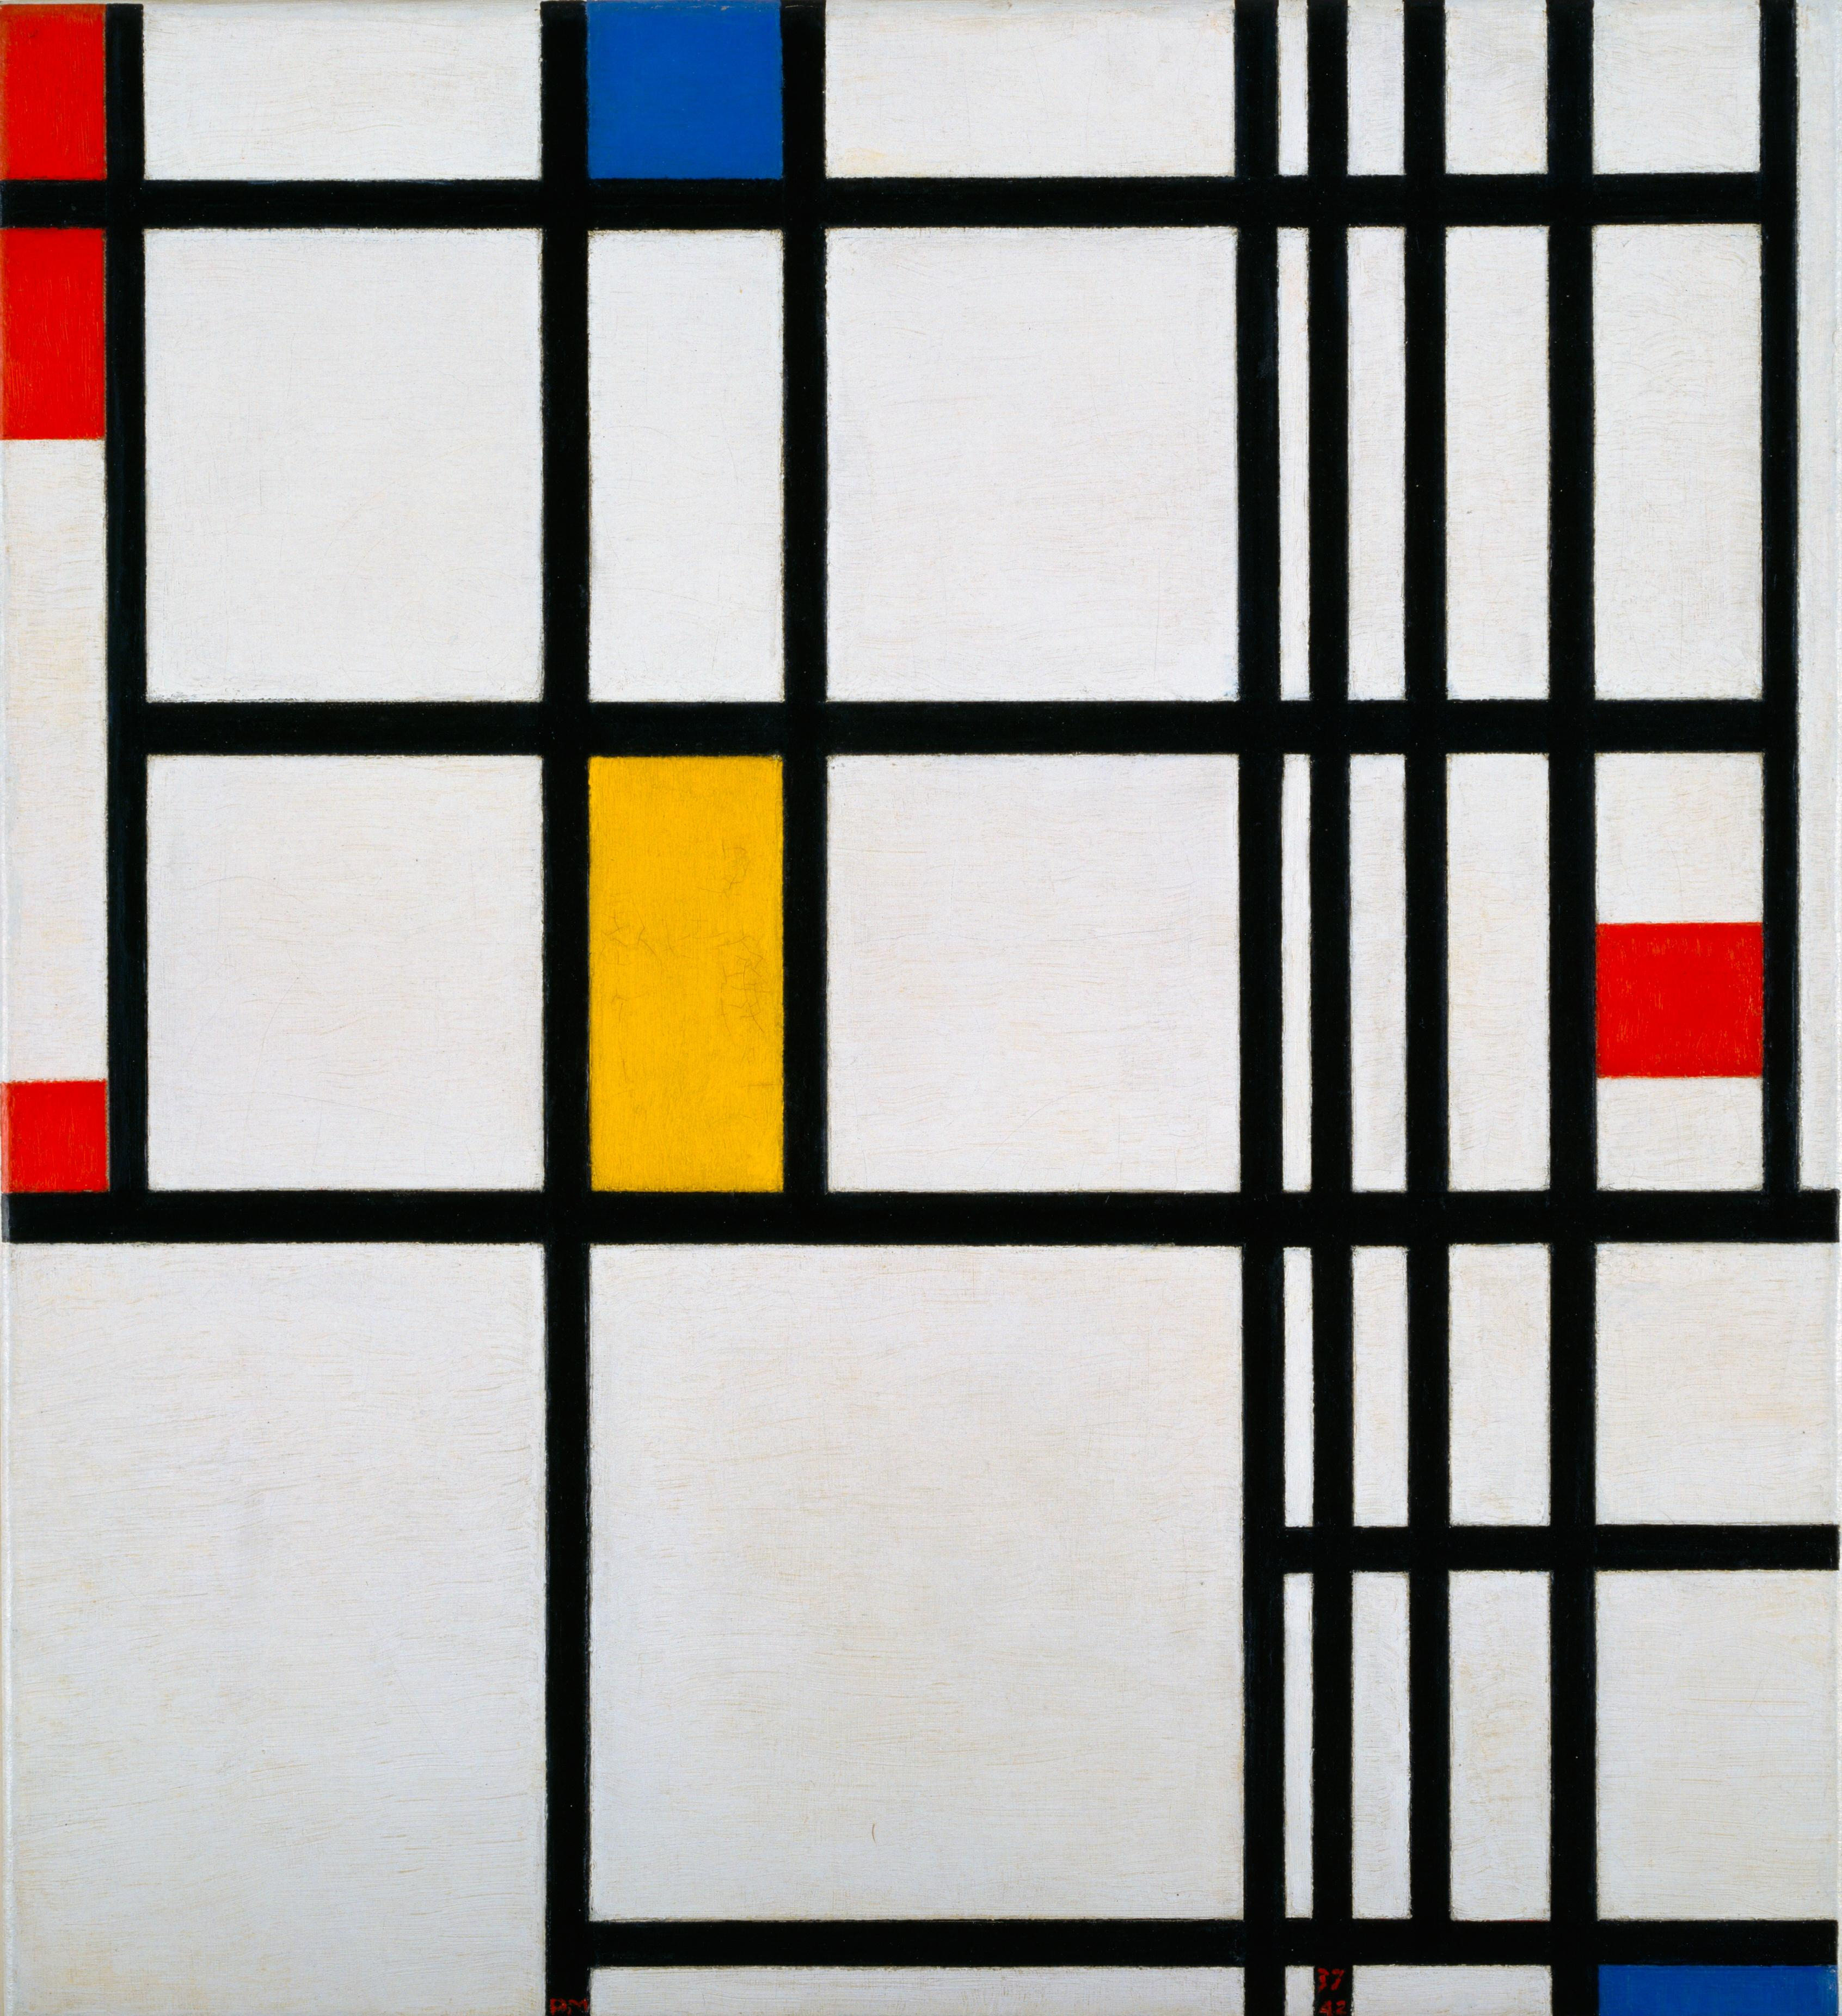 piet mondrian Mondrian, who had escaped to new york from europe after the outbreak of world war ii, delighted in the city's architecture he was also fascinated by american jazz, particularly boogie-woogie, finding its syncopated beat, irreverent approach to melody, and improvisational aesthetic akin to what he called, in his own work, the destruction of.